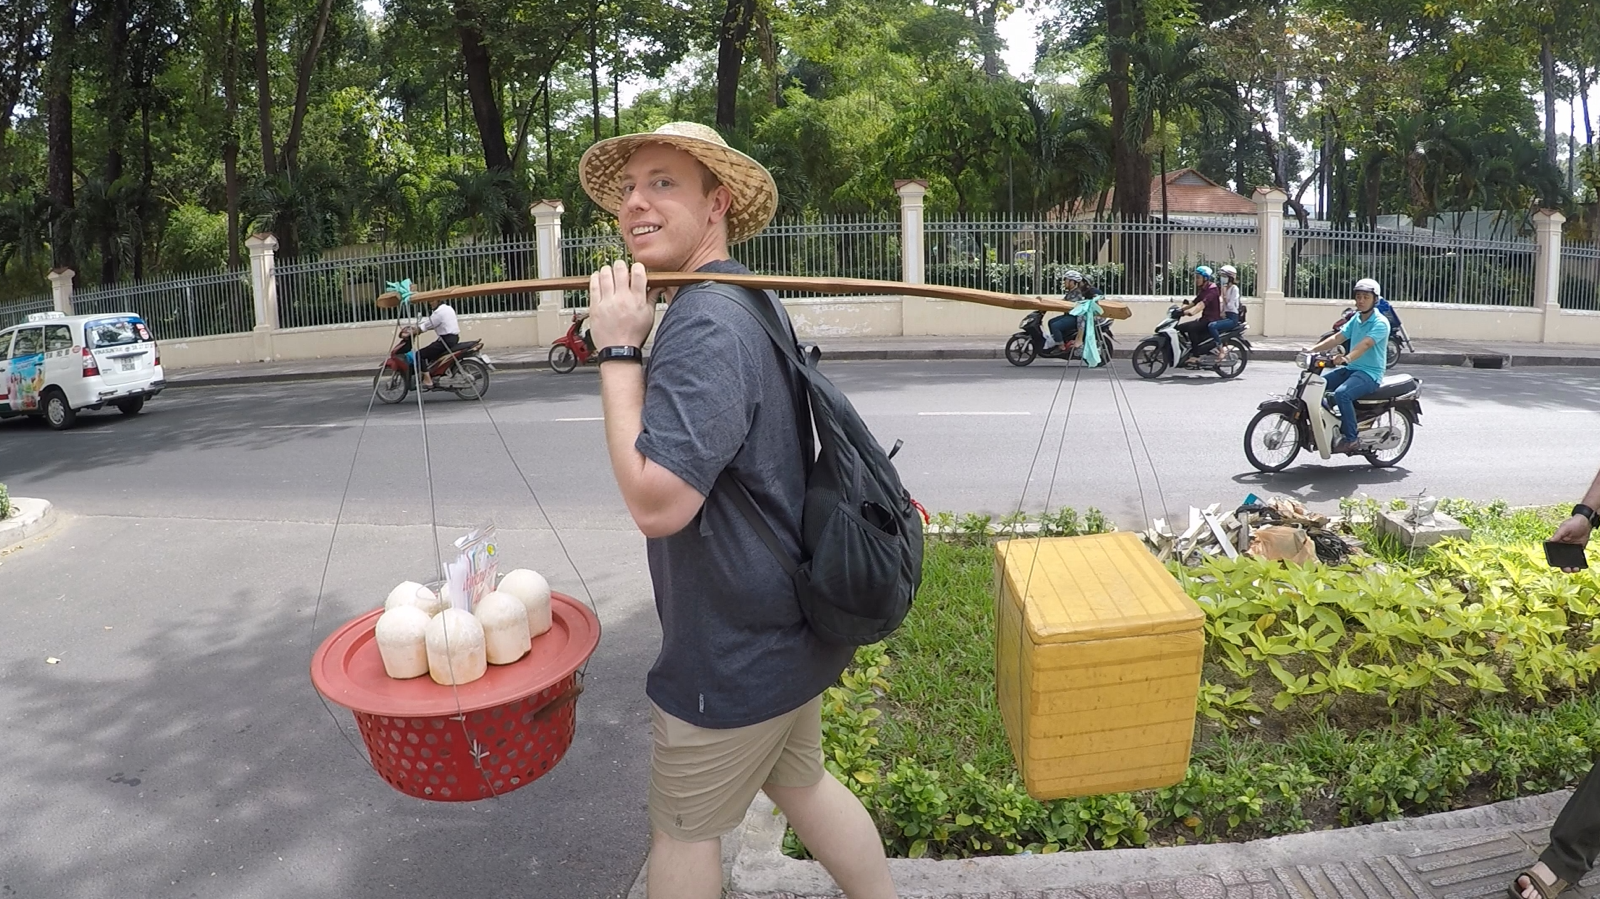 How I Used Miles to Book a Life-Changing Trip to Vietnam, Spending Less Out of Pocket Than My Expenses Back Home